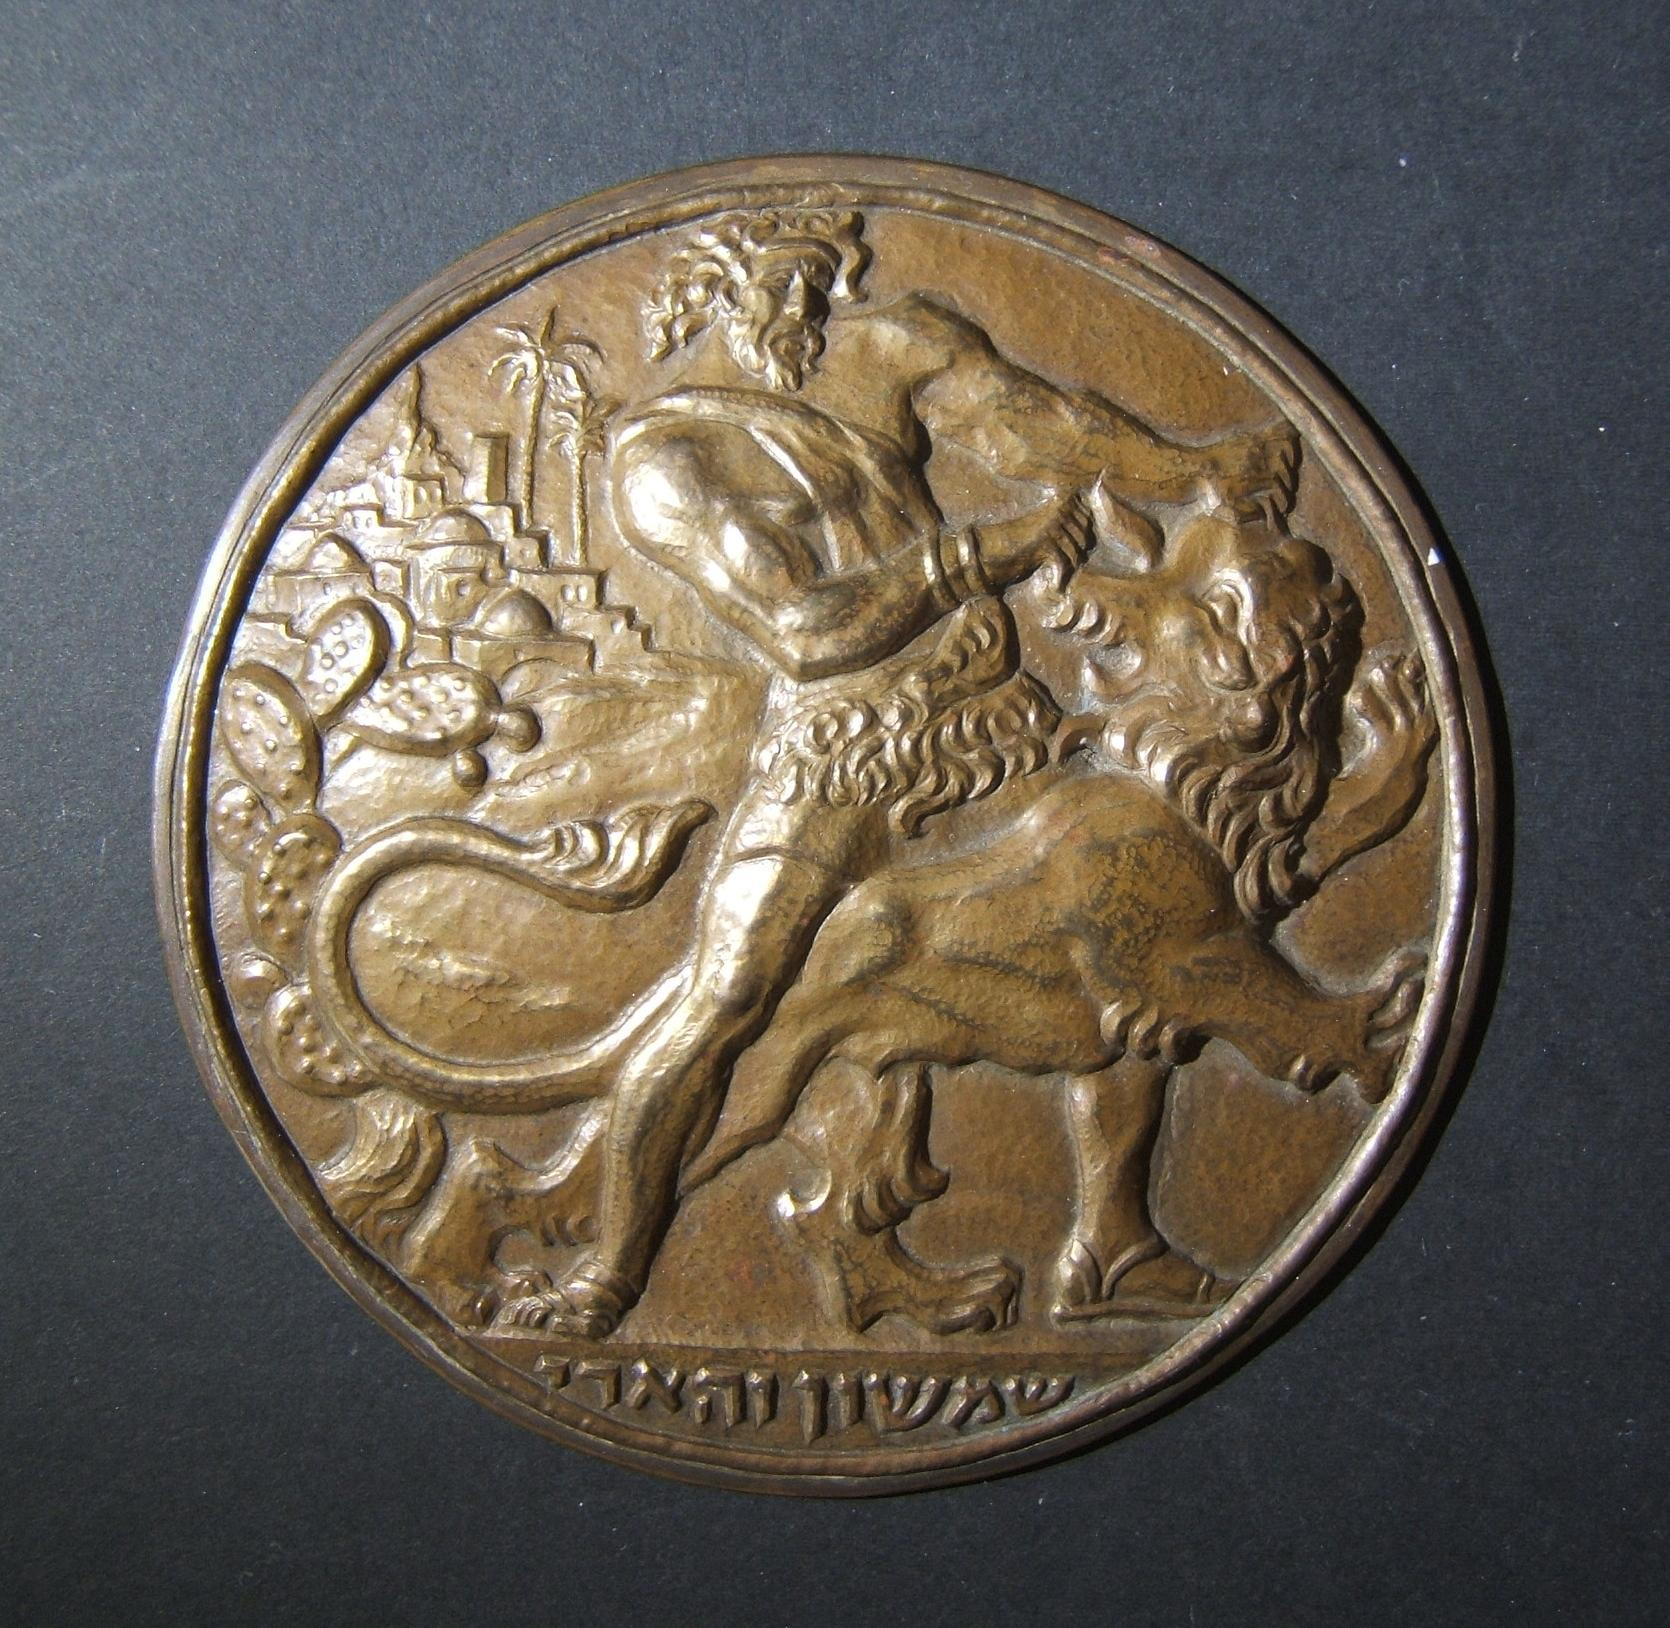 Israel: round copper plaque of the Biblical episode of Sampson (Shimshon) and the lion; size: 101mm; weight: 43g; not maker-marked.